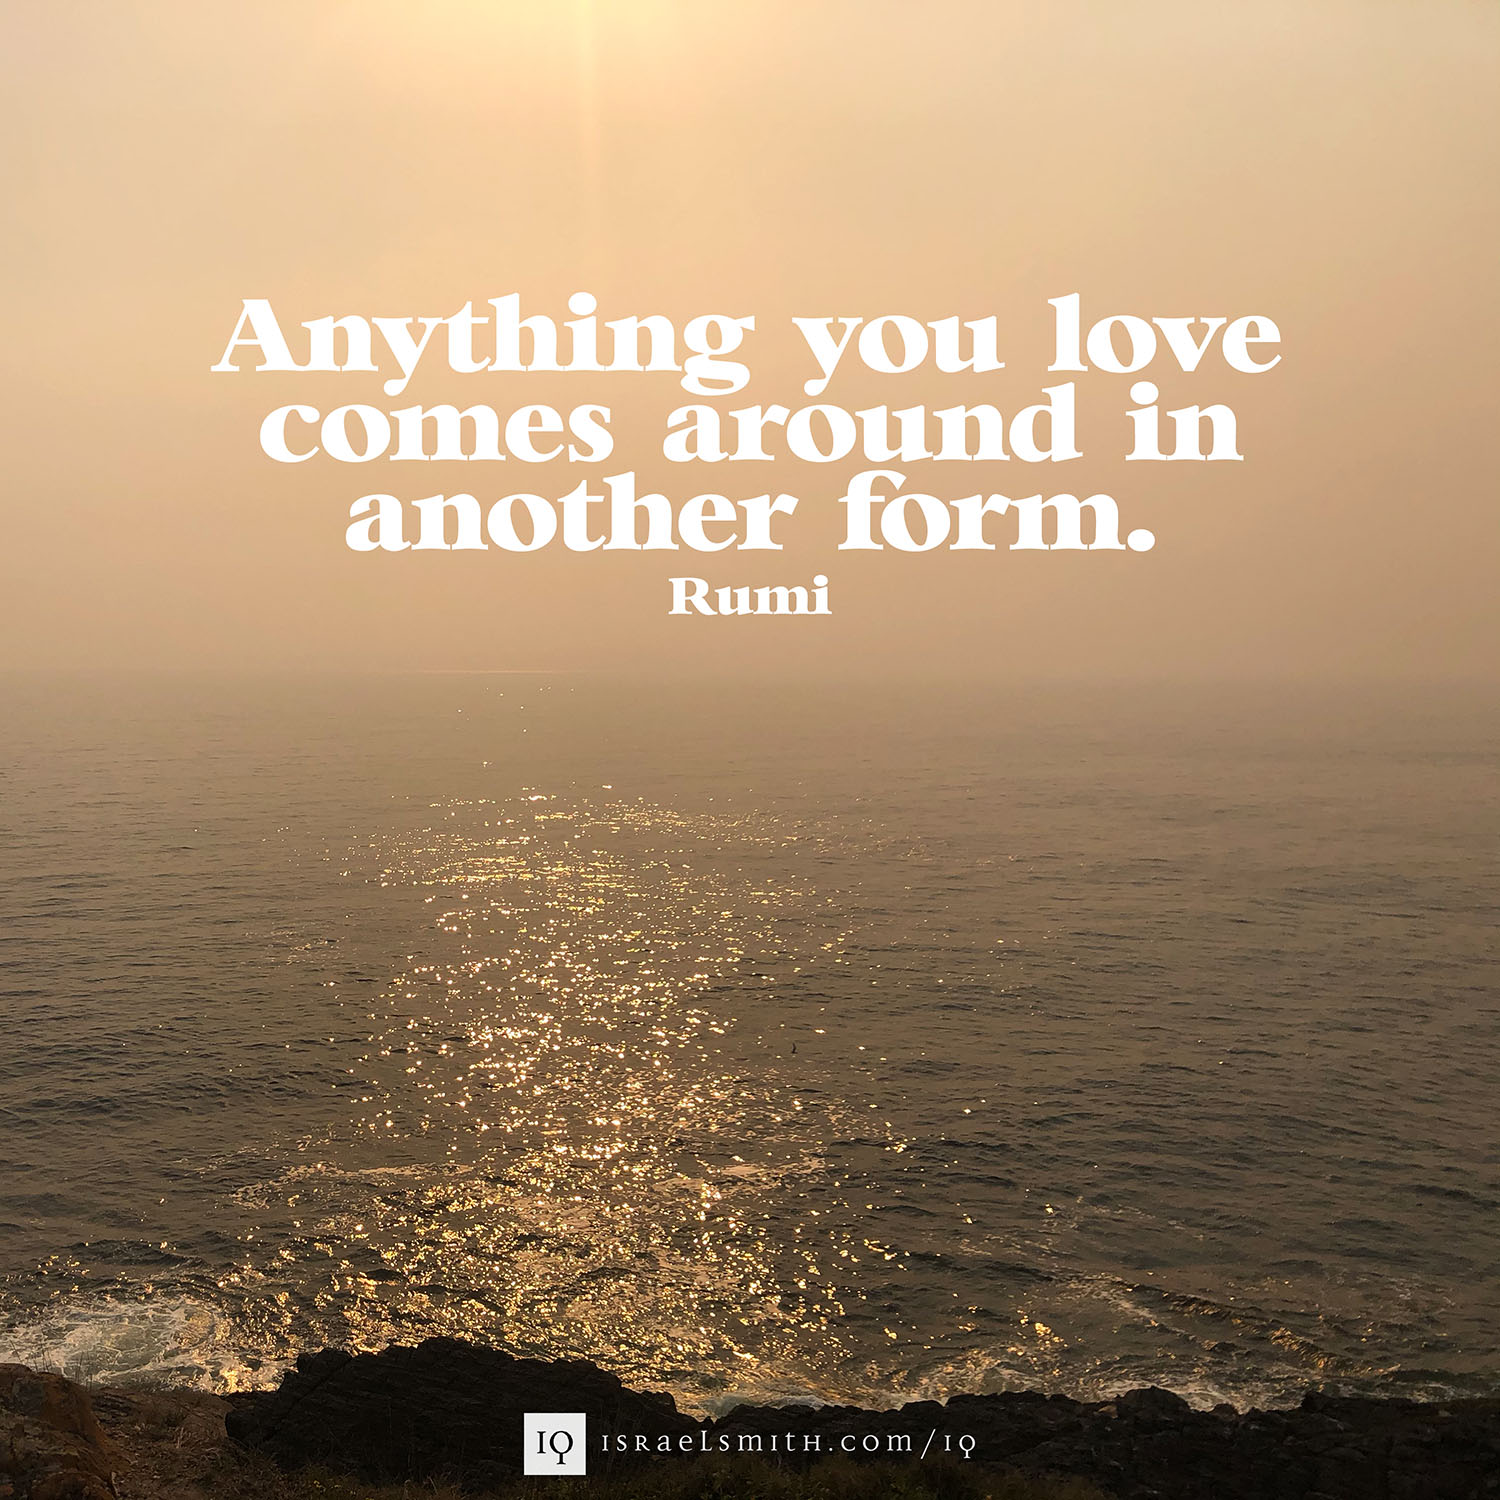 Anything you love